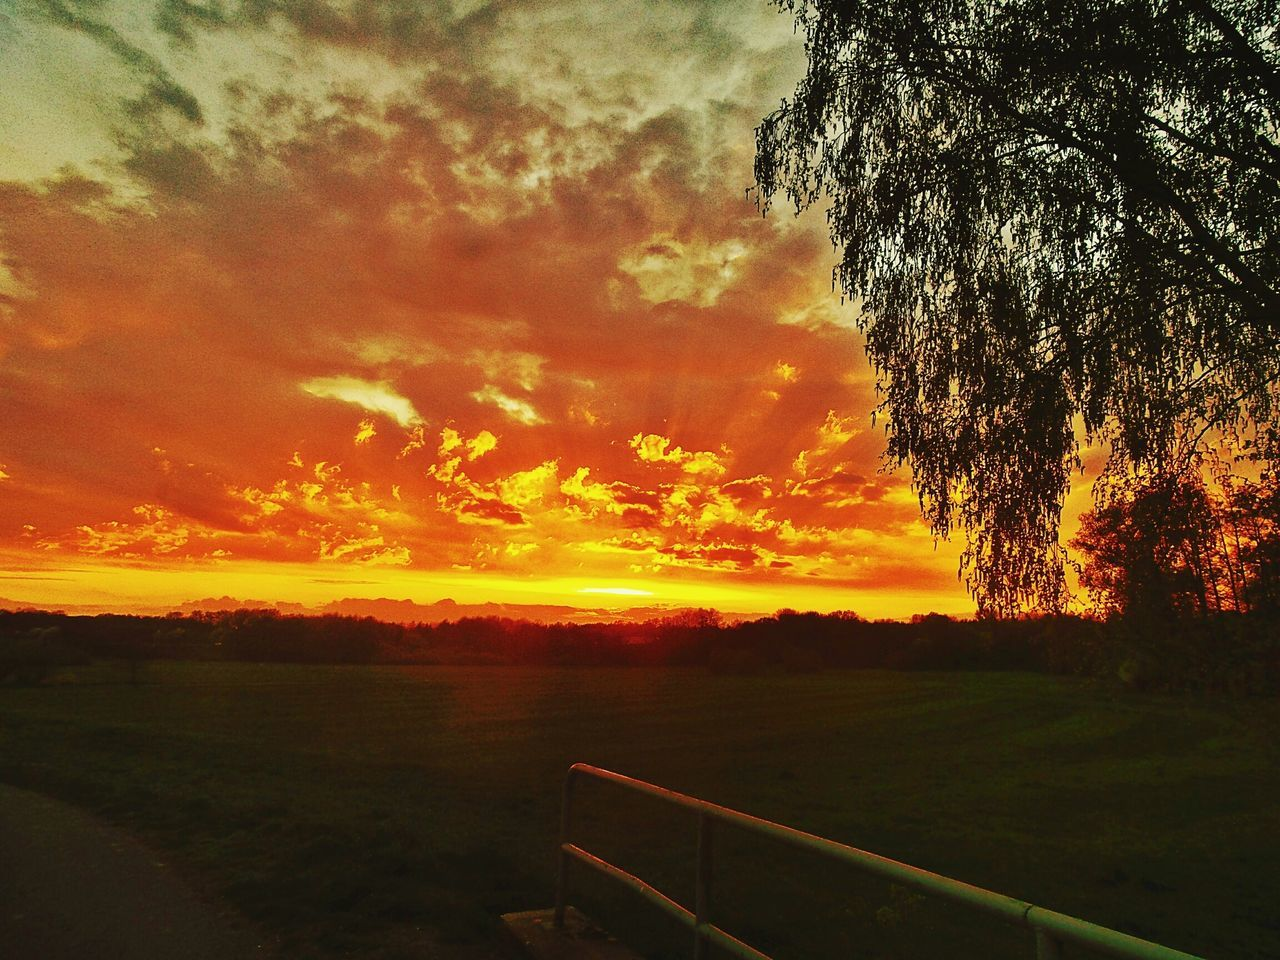 and another Sunset All Shades Of Orange Silhouettes Of Trees Silhouette And Sky Nature Beauty In Nature Tree Meadows On The Bridge Sky Sky And Clouds Cloud - Sky Scenics Day Outdoors No People Kinzig Meadowlands Germany🇩🇪